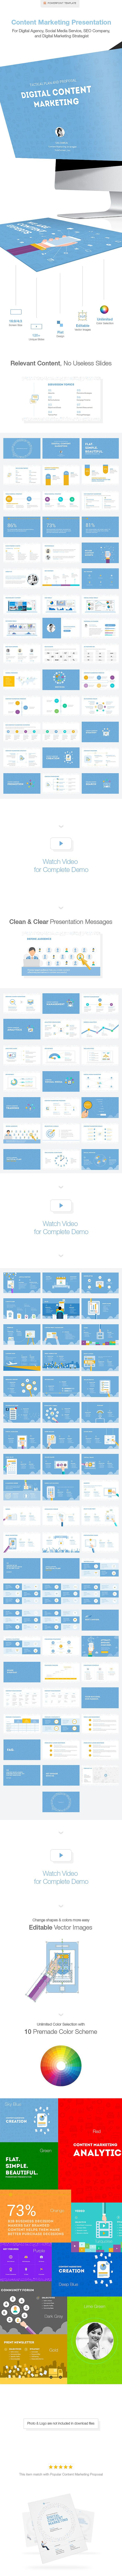 50 best corporate presentation images on pinterest | presentation, Presentation templates